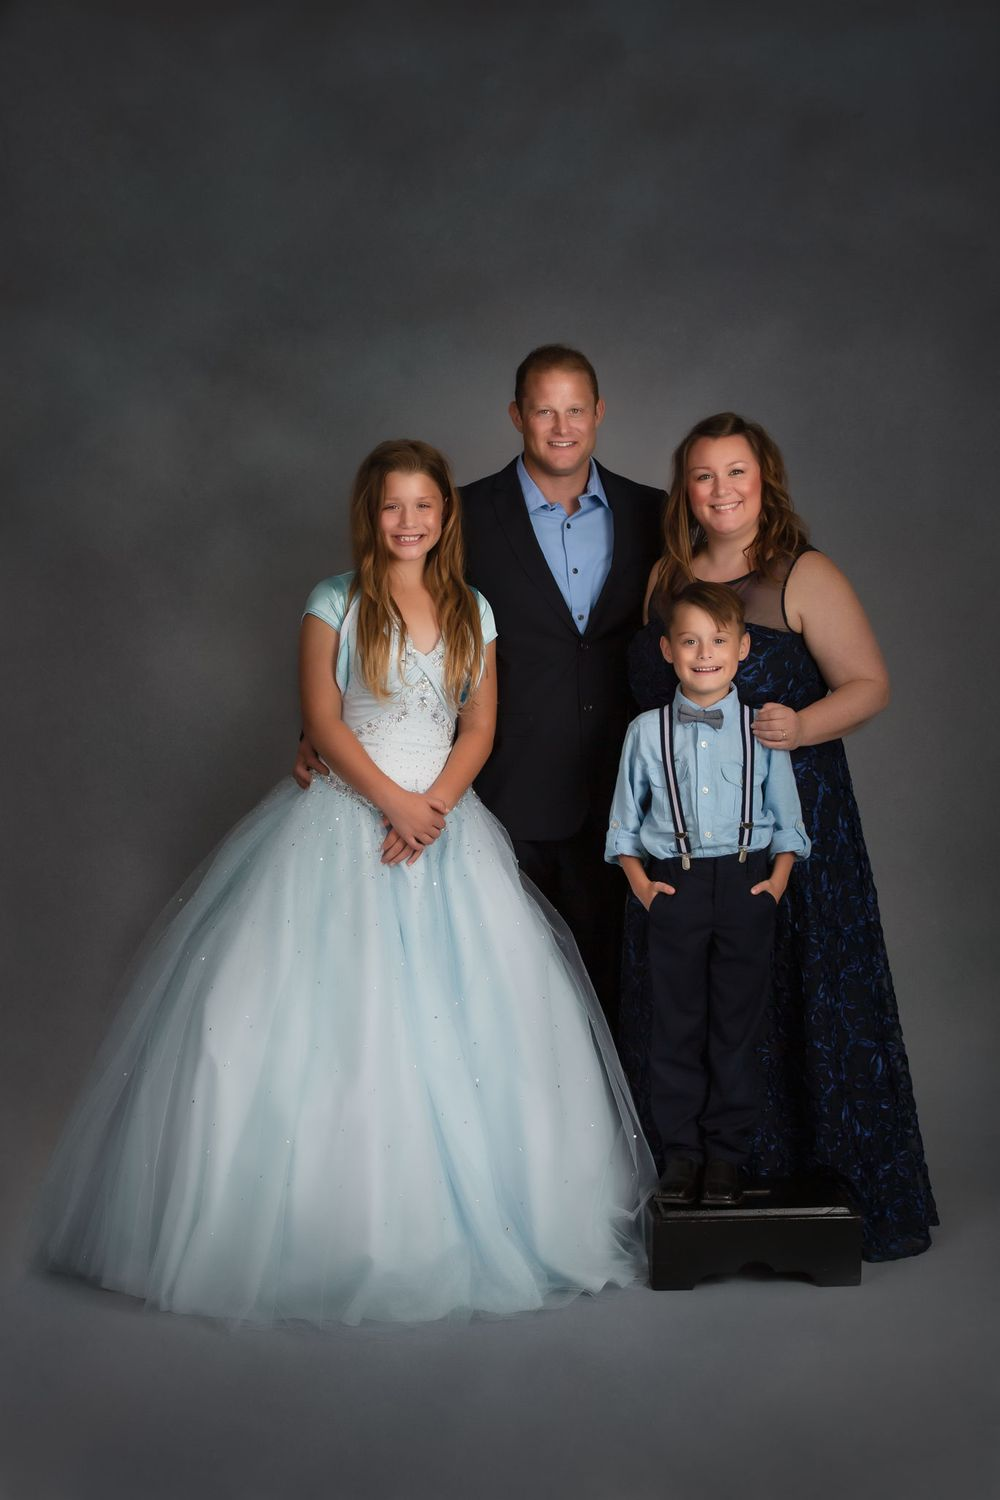 Omaha Fine Art Family portrait of family of four dressed in gowns and suits.